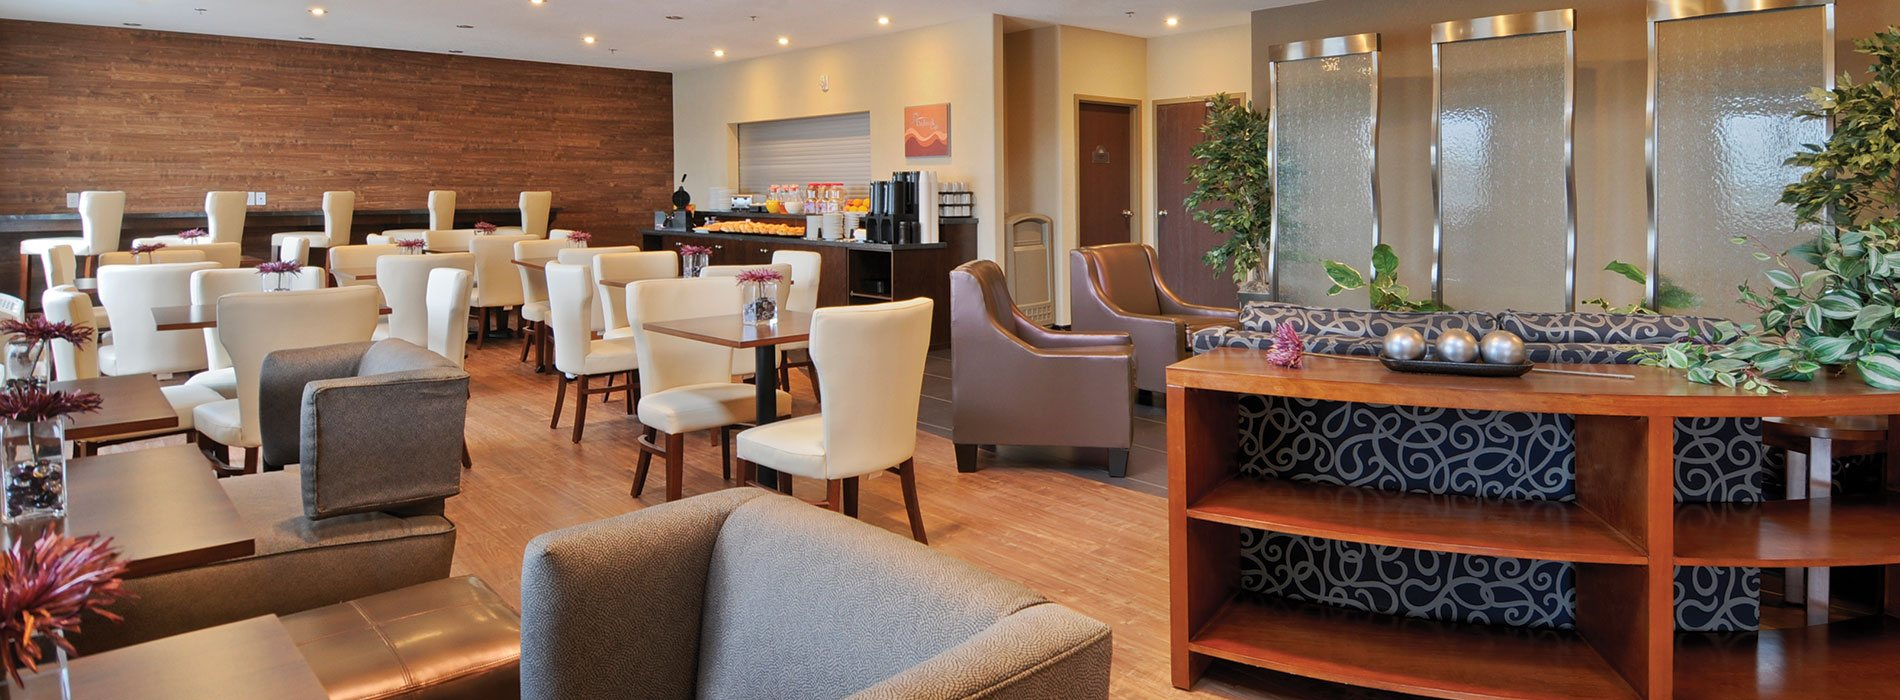 An overview of the Daybreak Café and the lounging space at d3h Days Inn Regina Airport West.  The lounge area is furnished with a swirl patterned navy blue sofa, two vinyl latte color armchairs, a sofa console table and several placements of potted green leaf plants.  The dining space features a fully stocked chocolate brown breakfast counter, a tawny brown wood paneled accent wall with built in breakfast bar and square eating tables paired with white upholstered dining chairs.